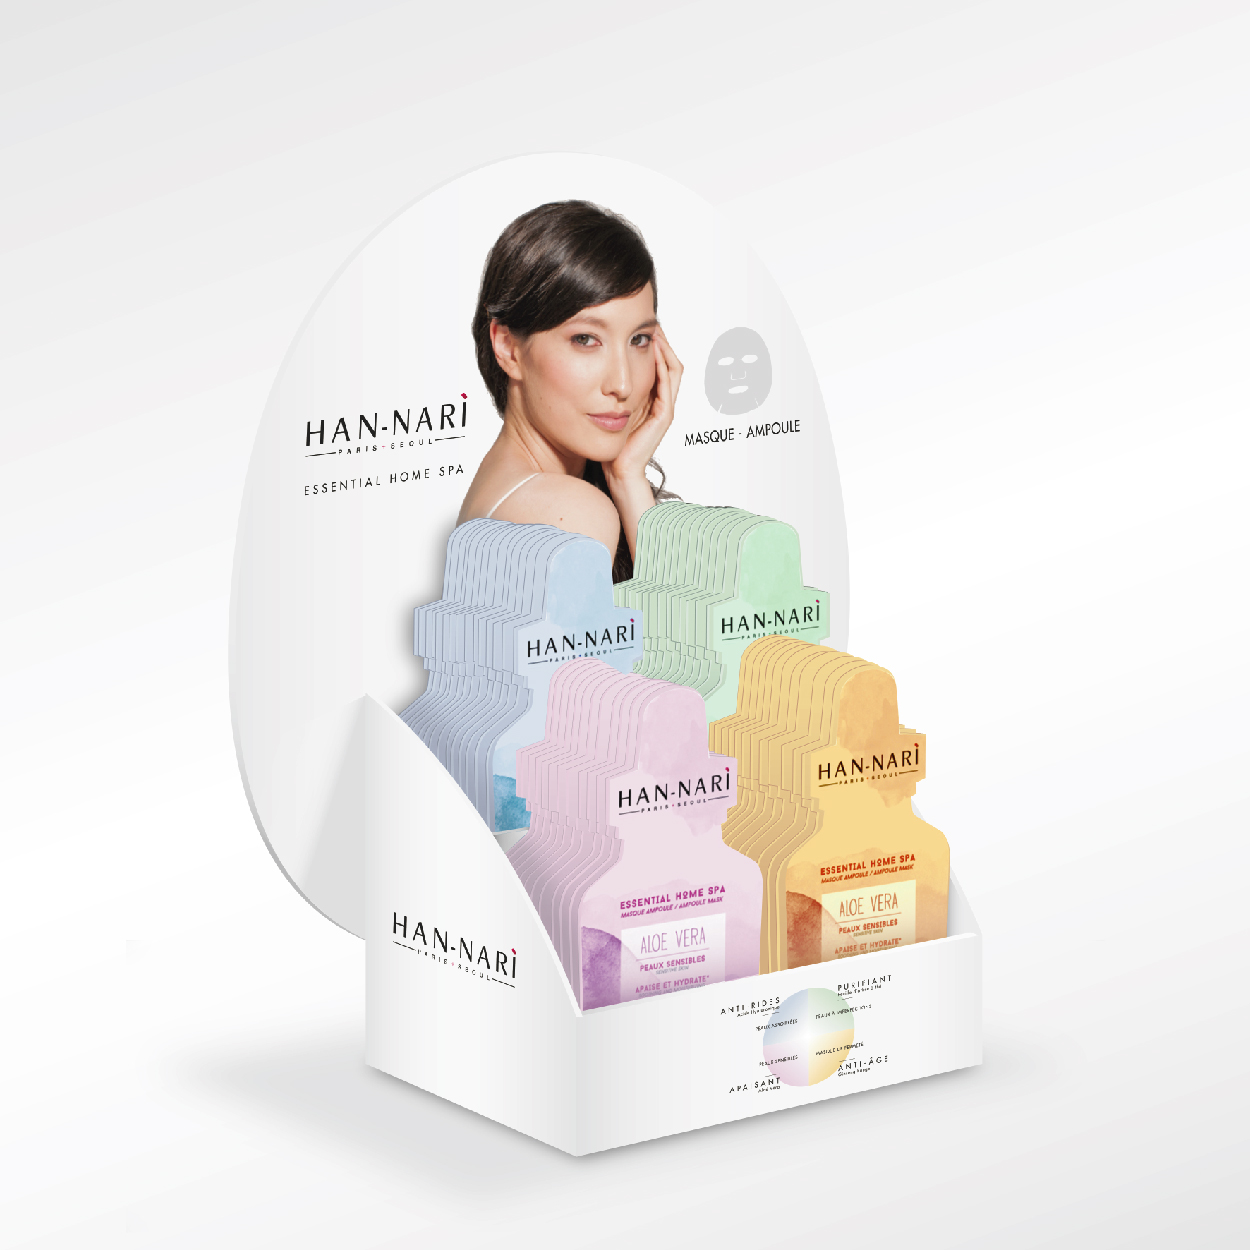 Storytelling brand content PLV Présentoir HANNARI Essential Home SPA 1703 Factory